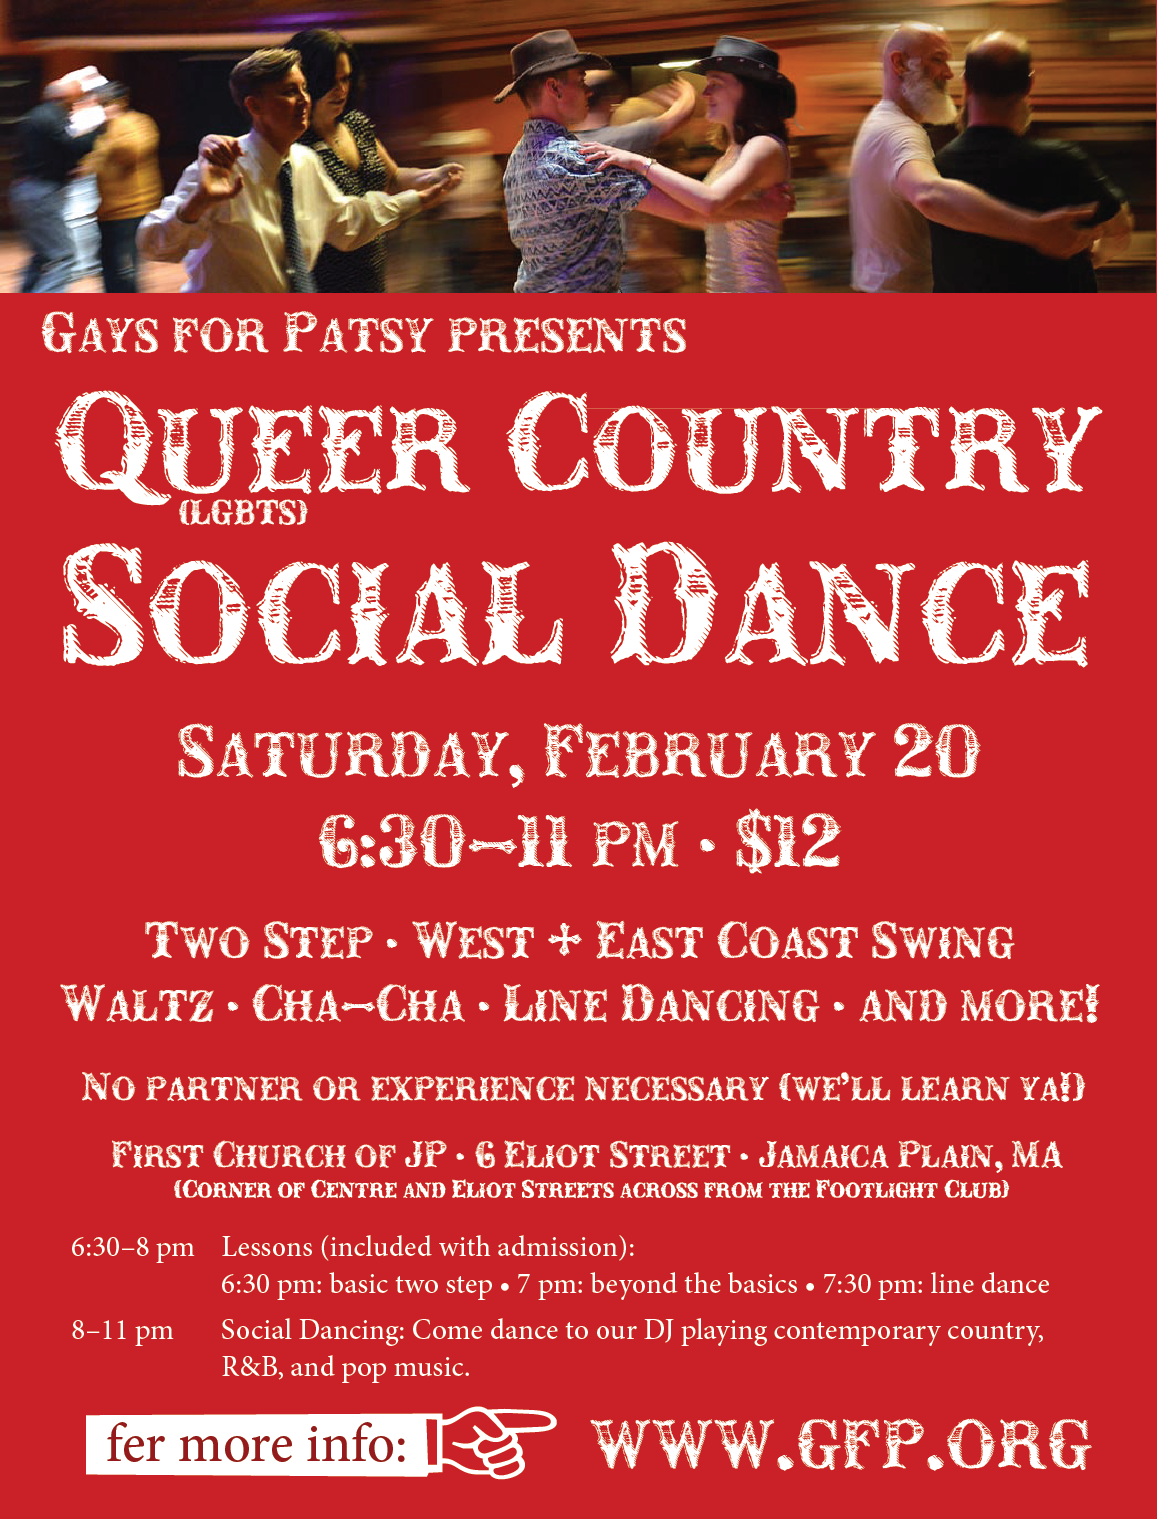 Link to pdf of the dance flyer